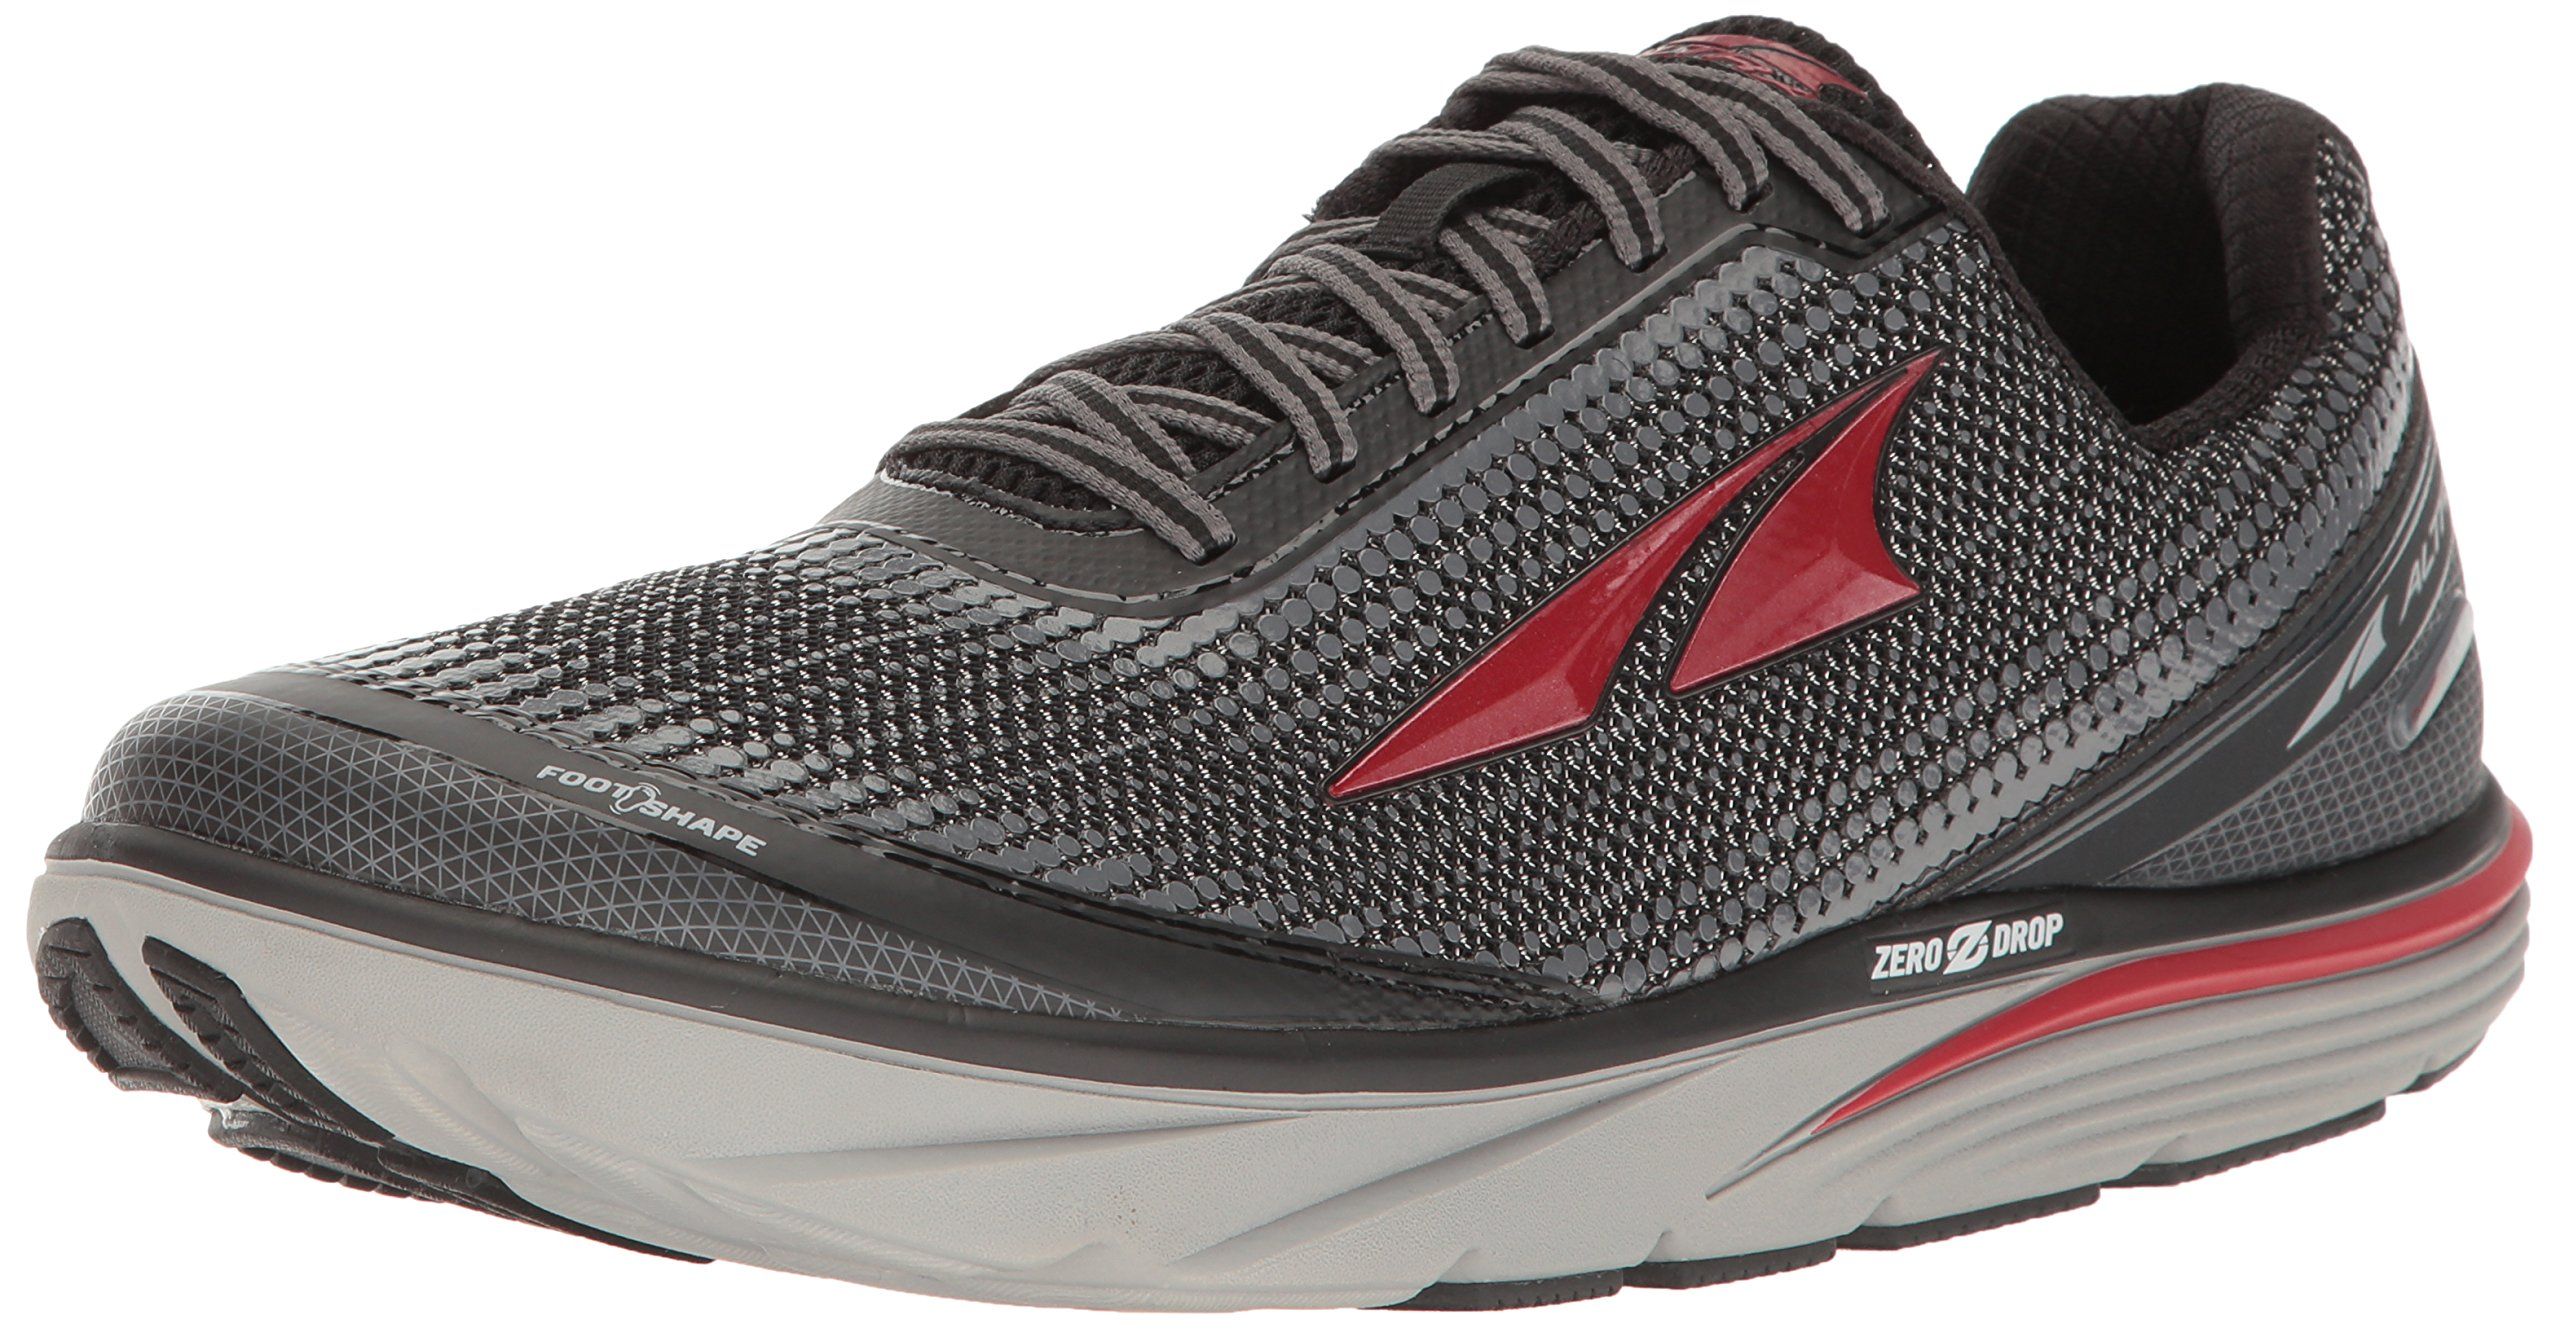 Altra Men's Torin 3 Running Shoe, Black/Red, 10 D US